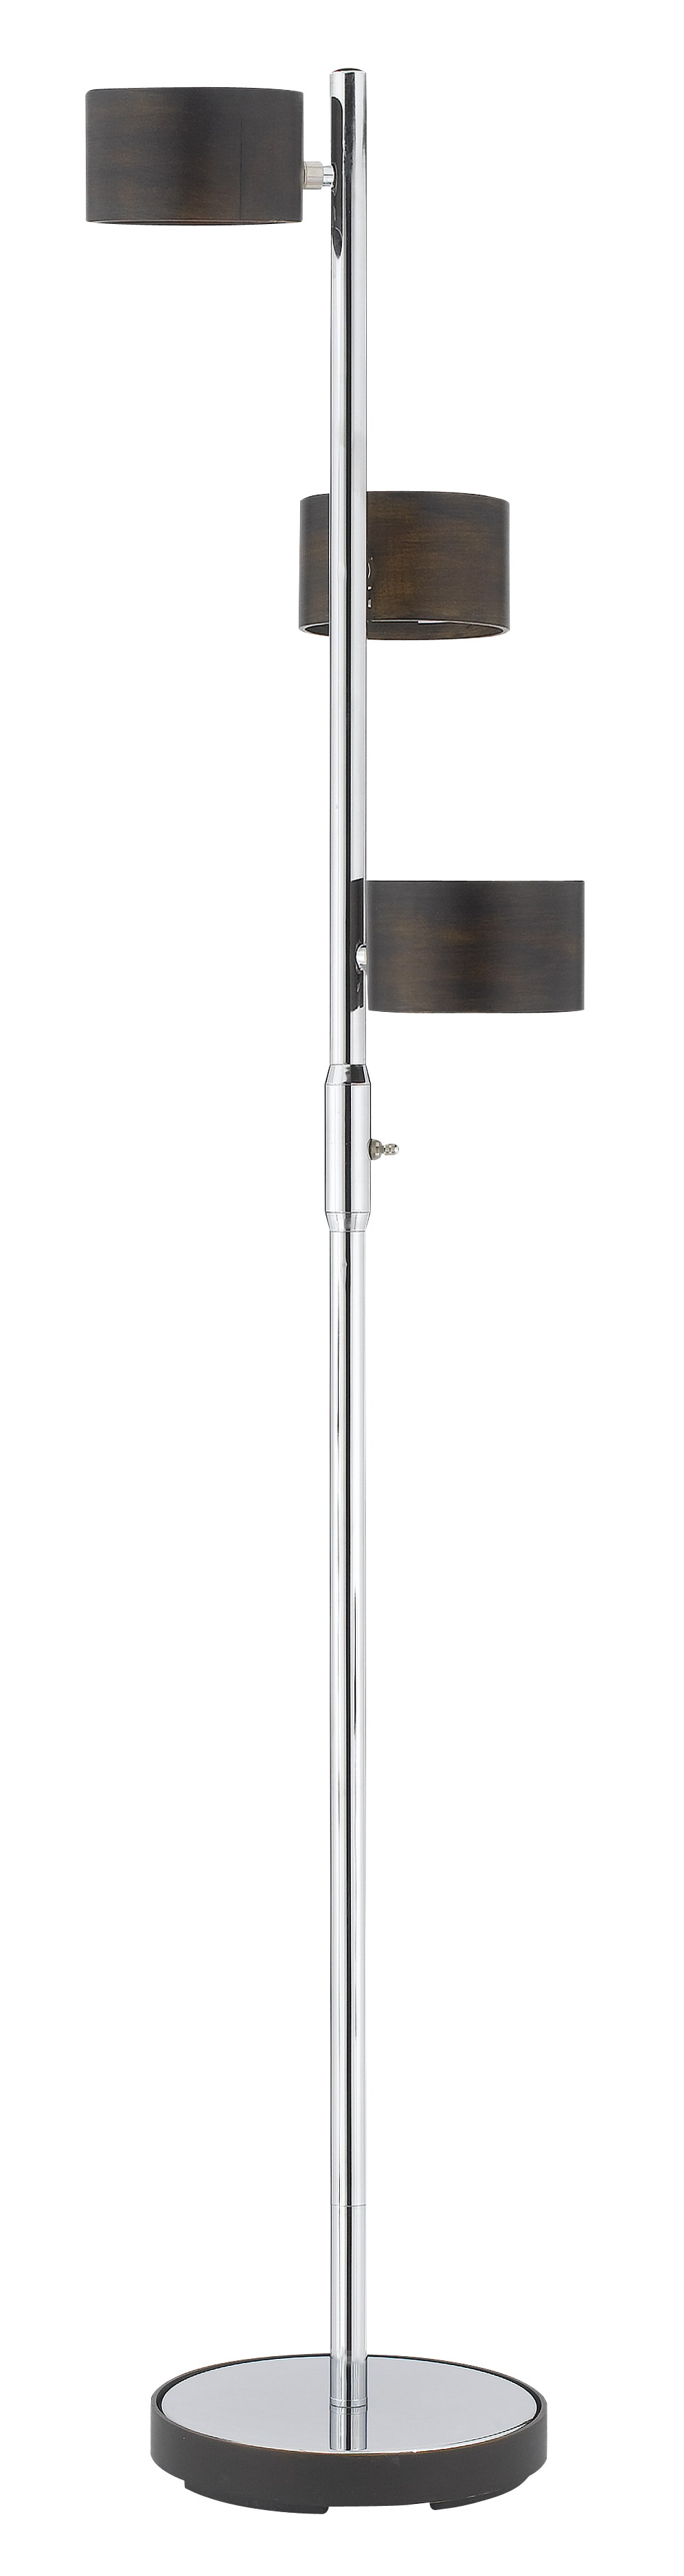 Cal Lighting  Cal Lighting Floor Lamp - Brushed Steel/Wood, BO-2040FL